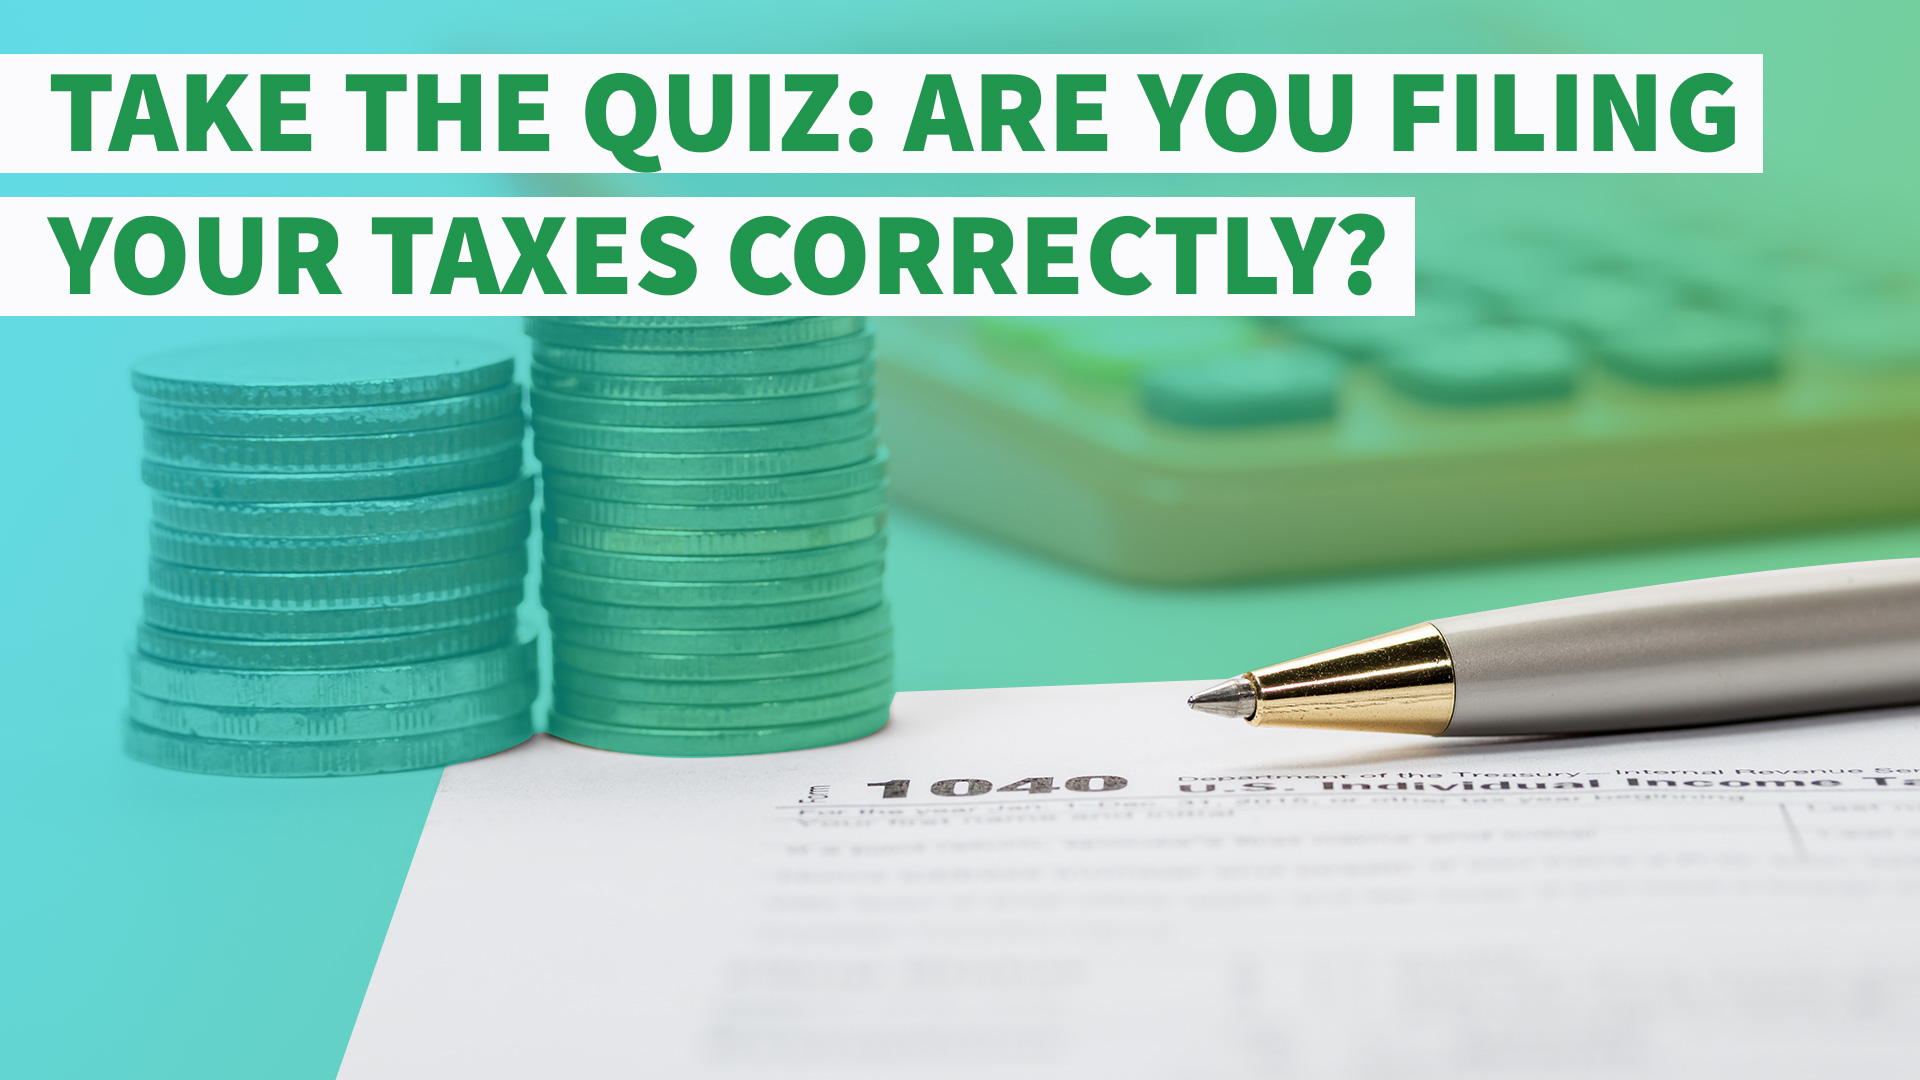 worksheet Itsdeductible Worksheet 8 ways to deduct your job search expenses gobankingrates take the quiz are you filing taxes correctly